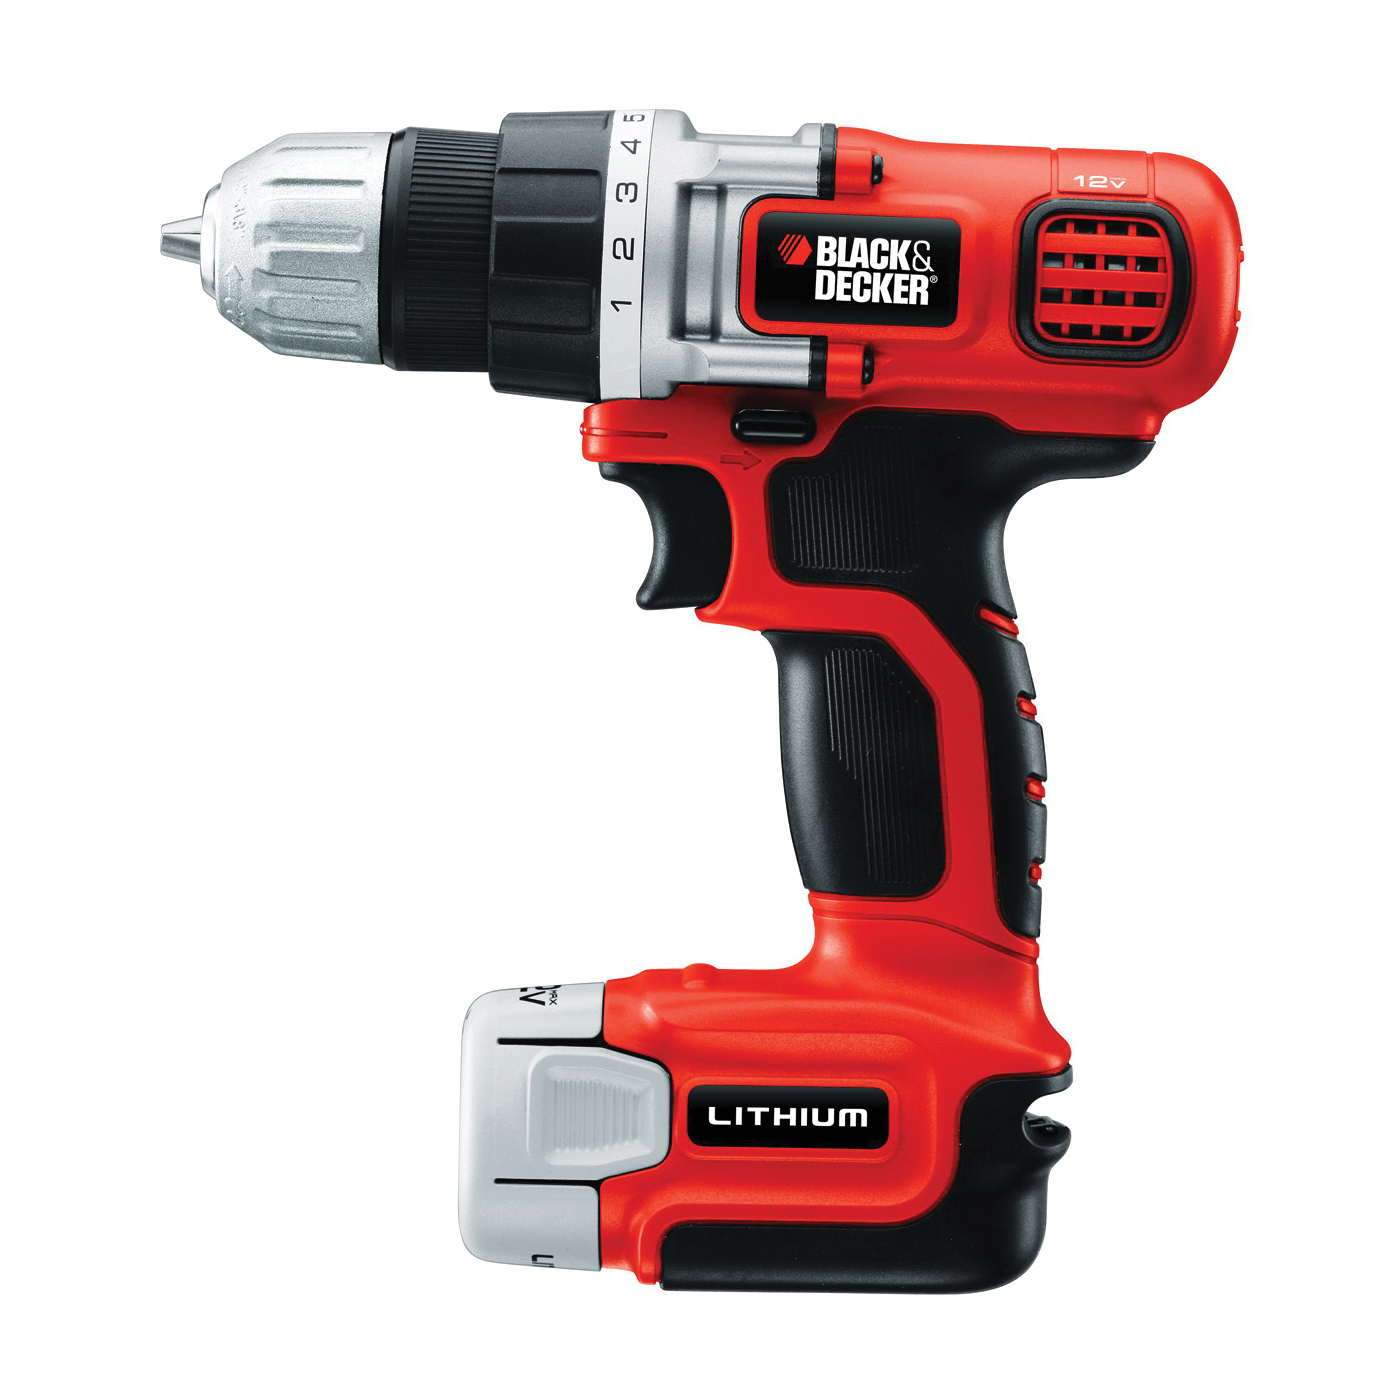 Picture of Black+Decker BDCDD12C/LDX112C Drill/Driver, Kit, 12 V Battery, 3/8 in Chuck, Keyless Chuck, Battery Included: Yes